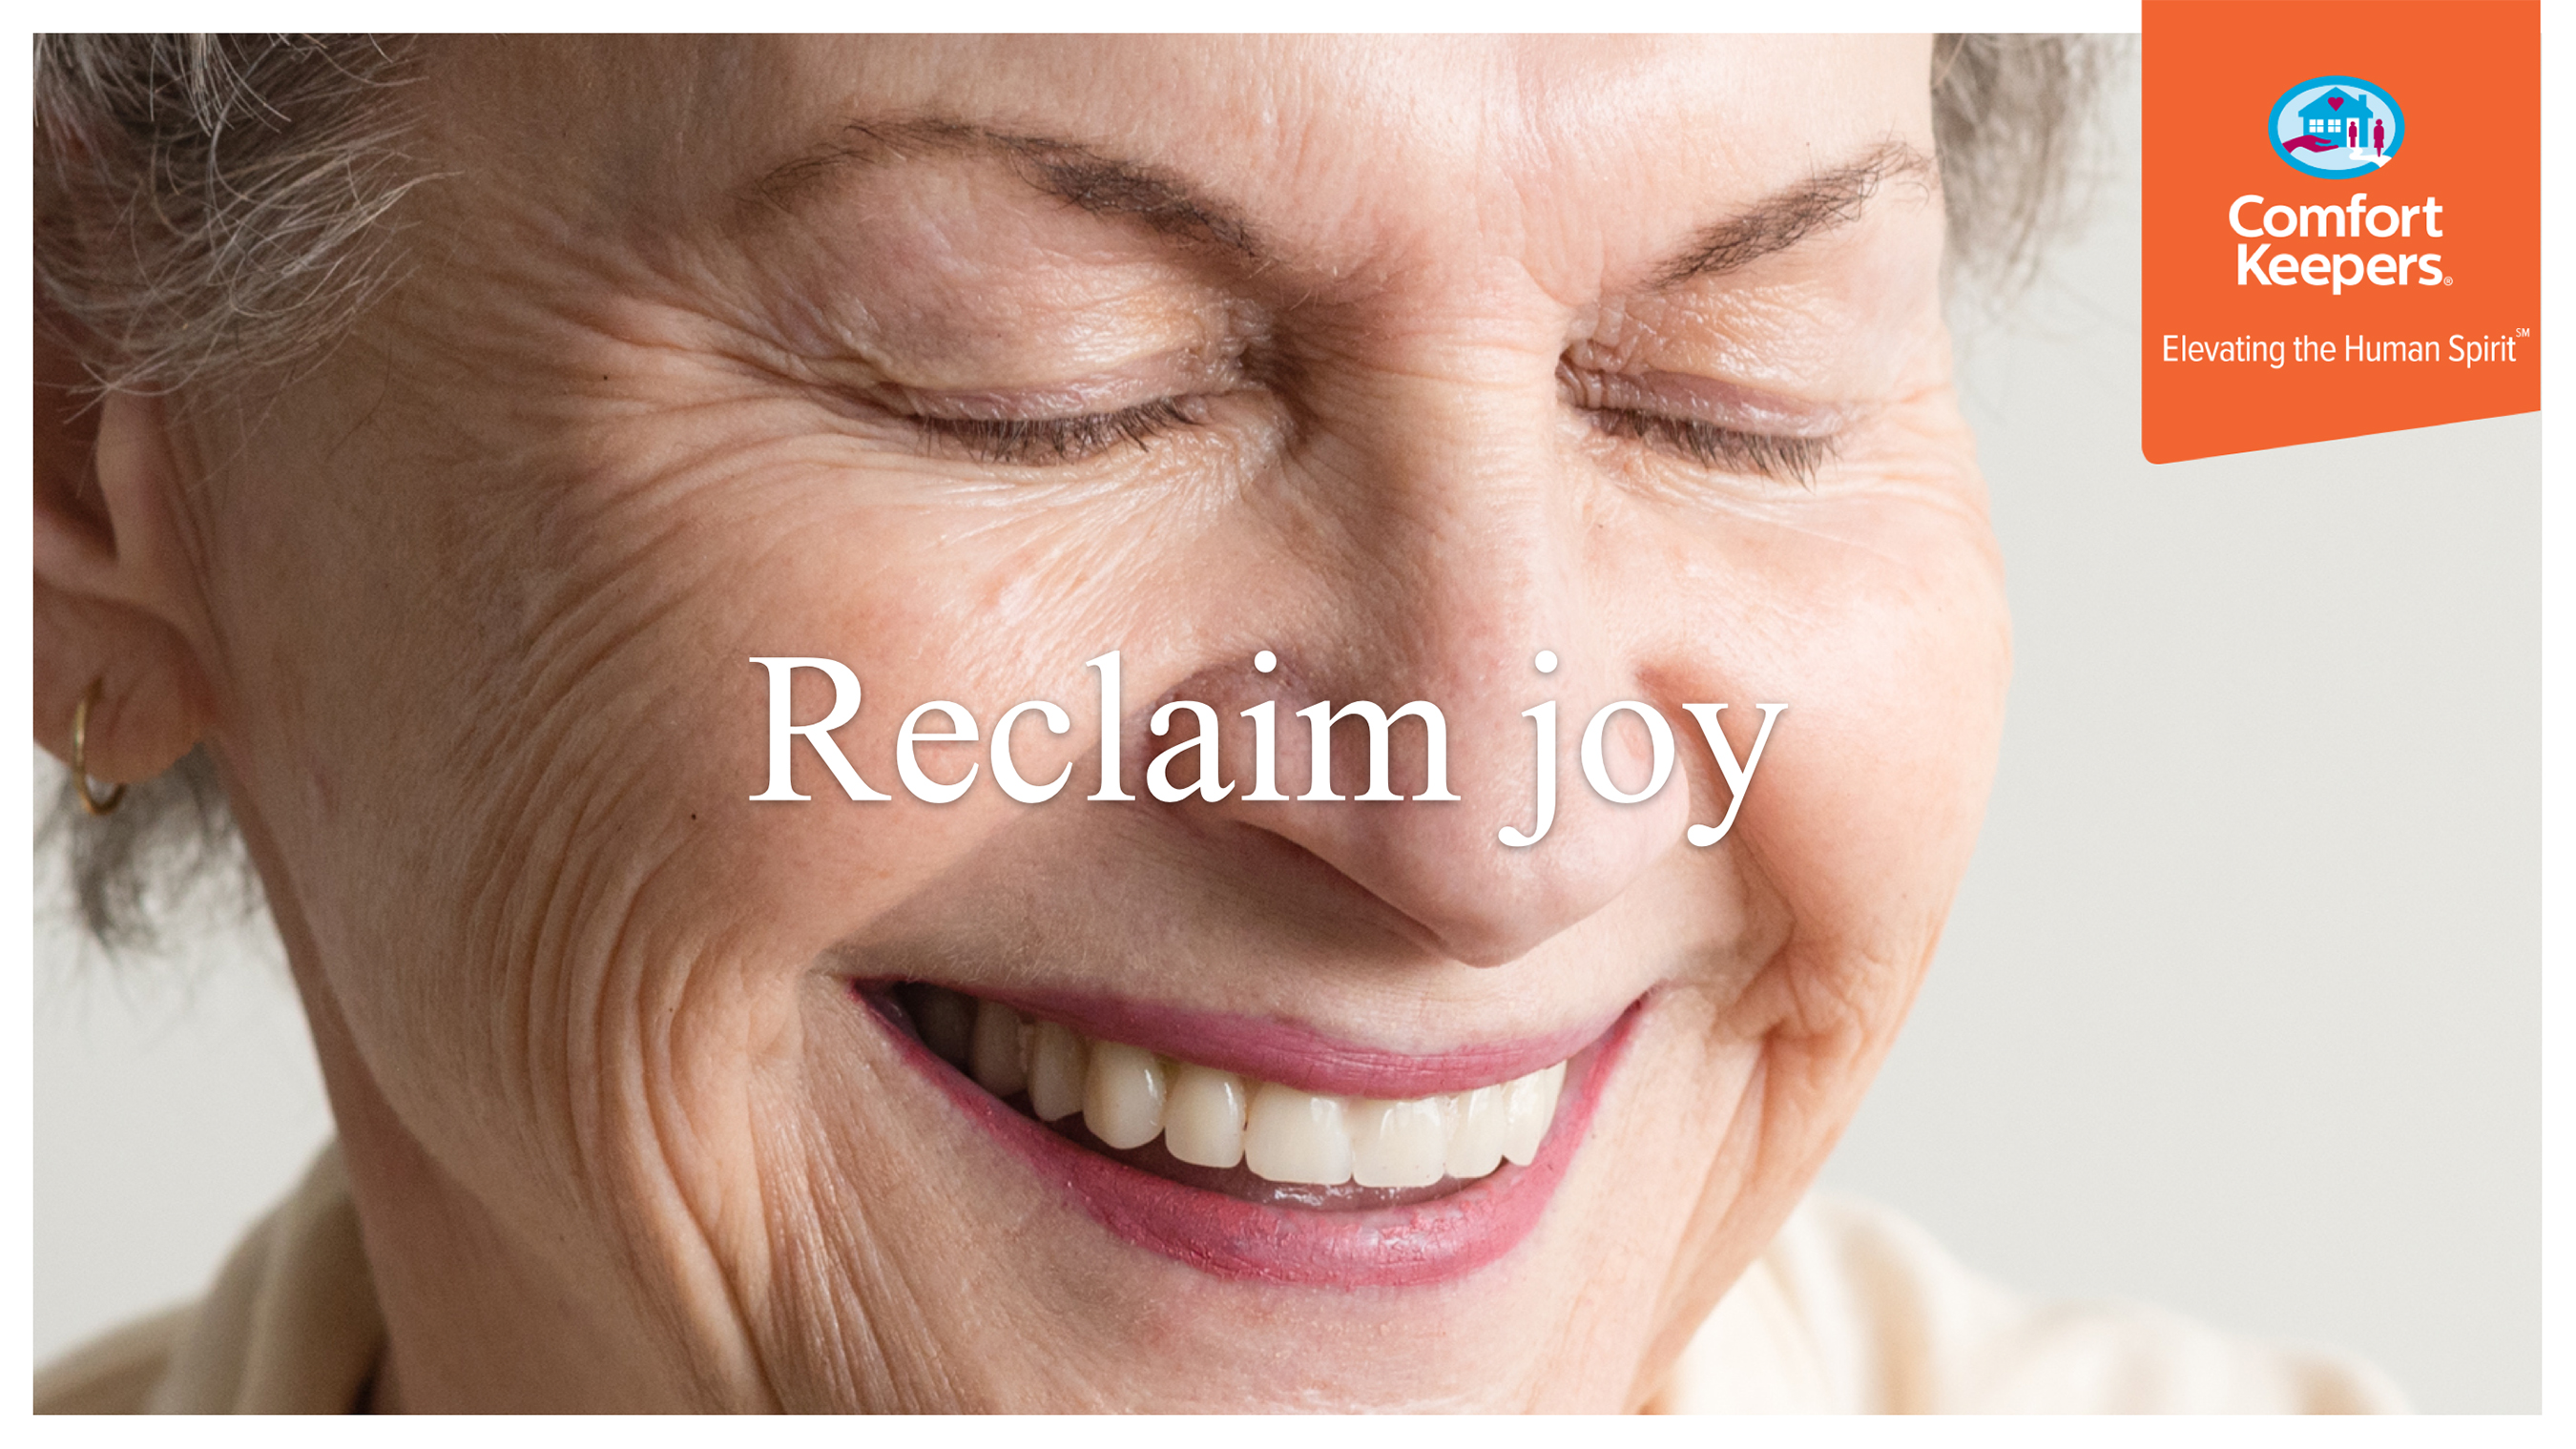 Comfort Keepers - Reclaim Joy